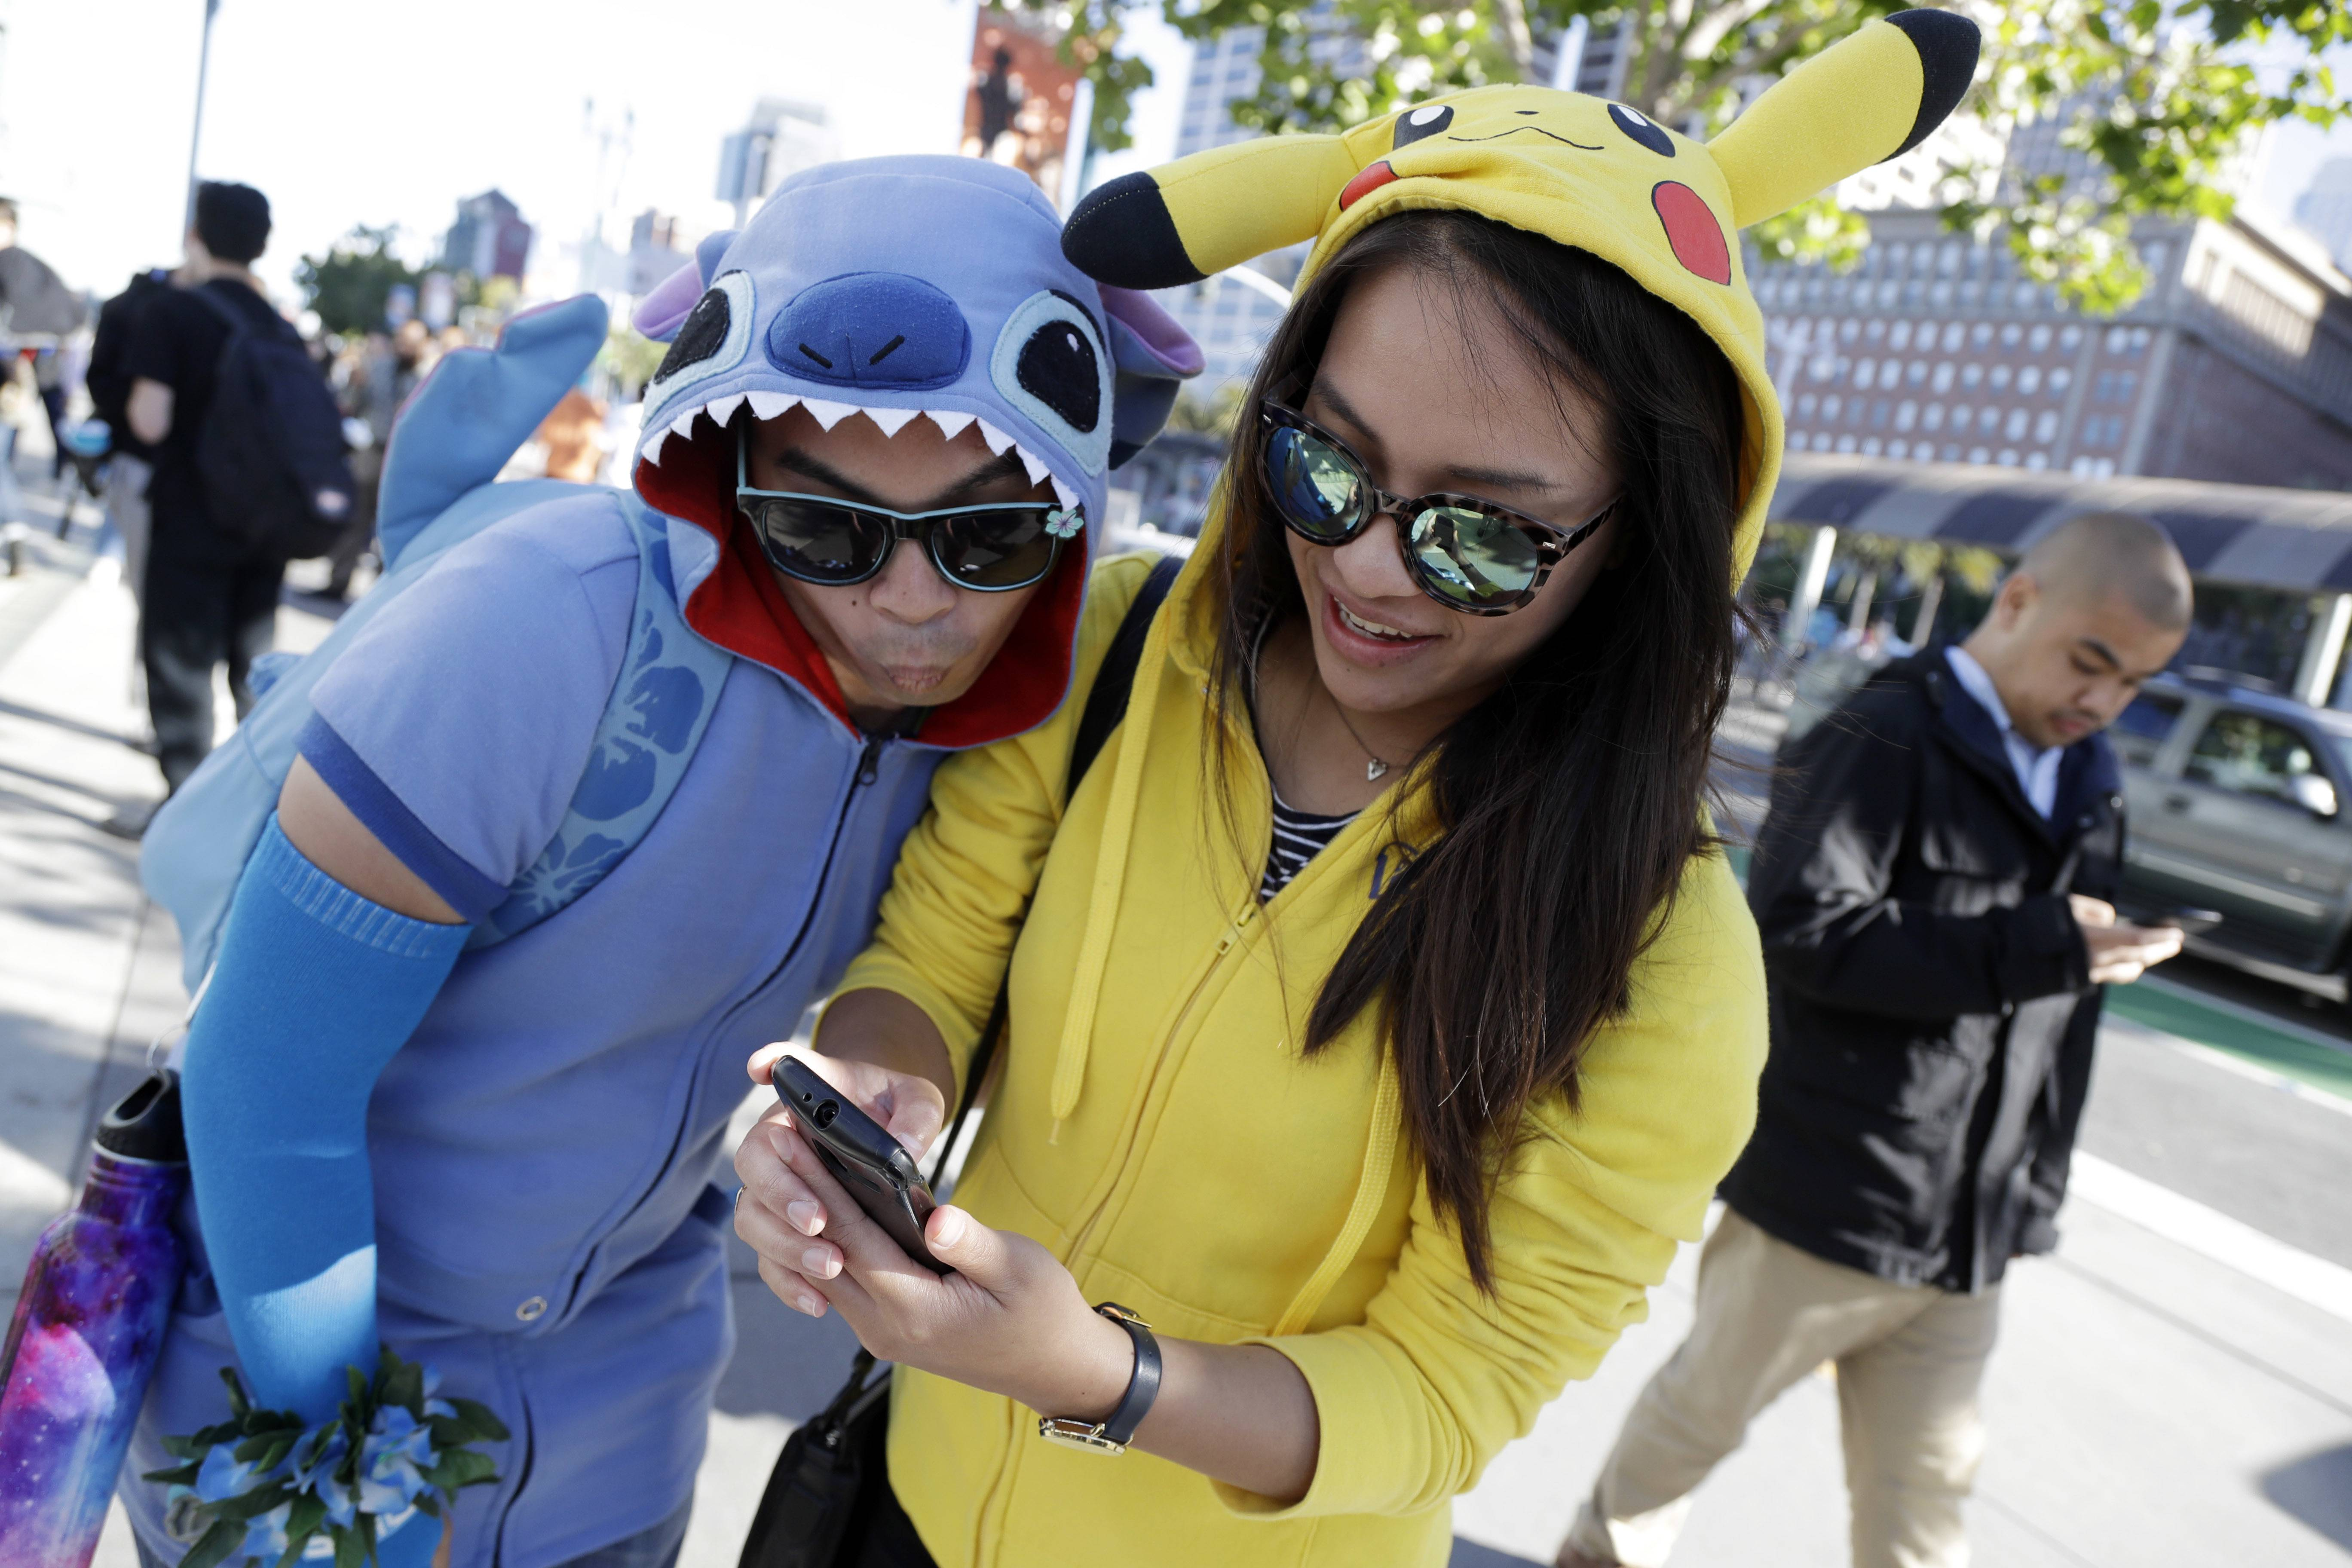 People costumed as the game's characters participate in a Pokemon Go search during a gathering of players Wednesday, July 20, 2016, in San Francisco.